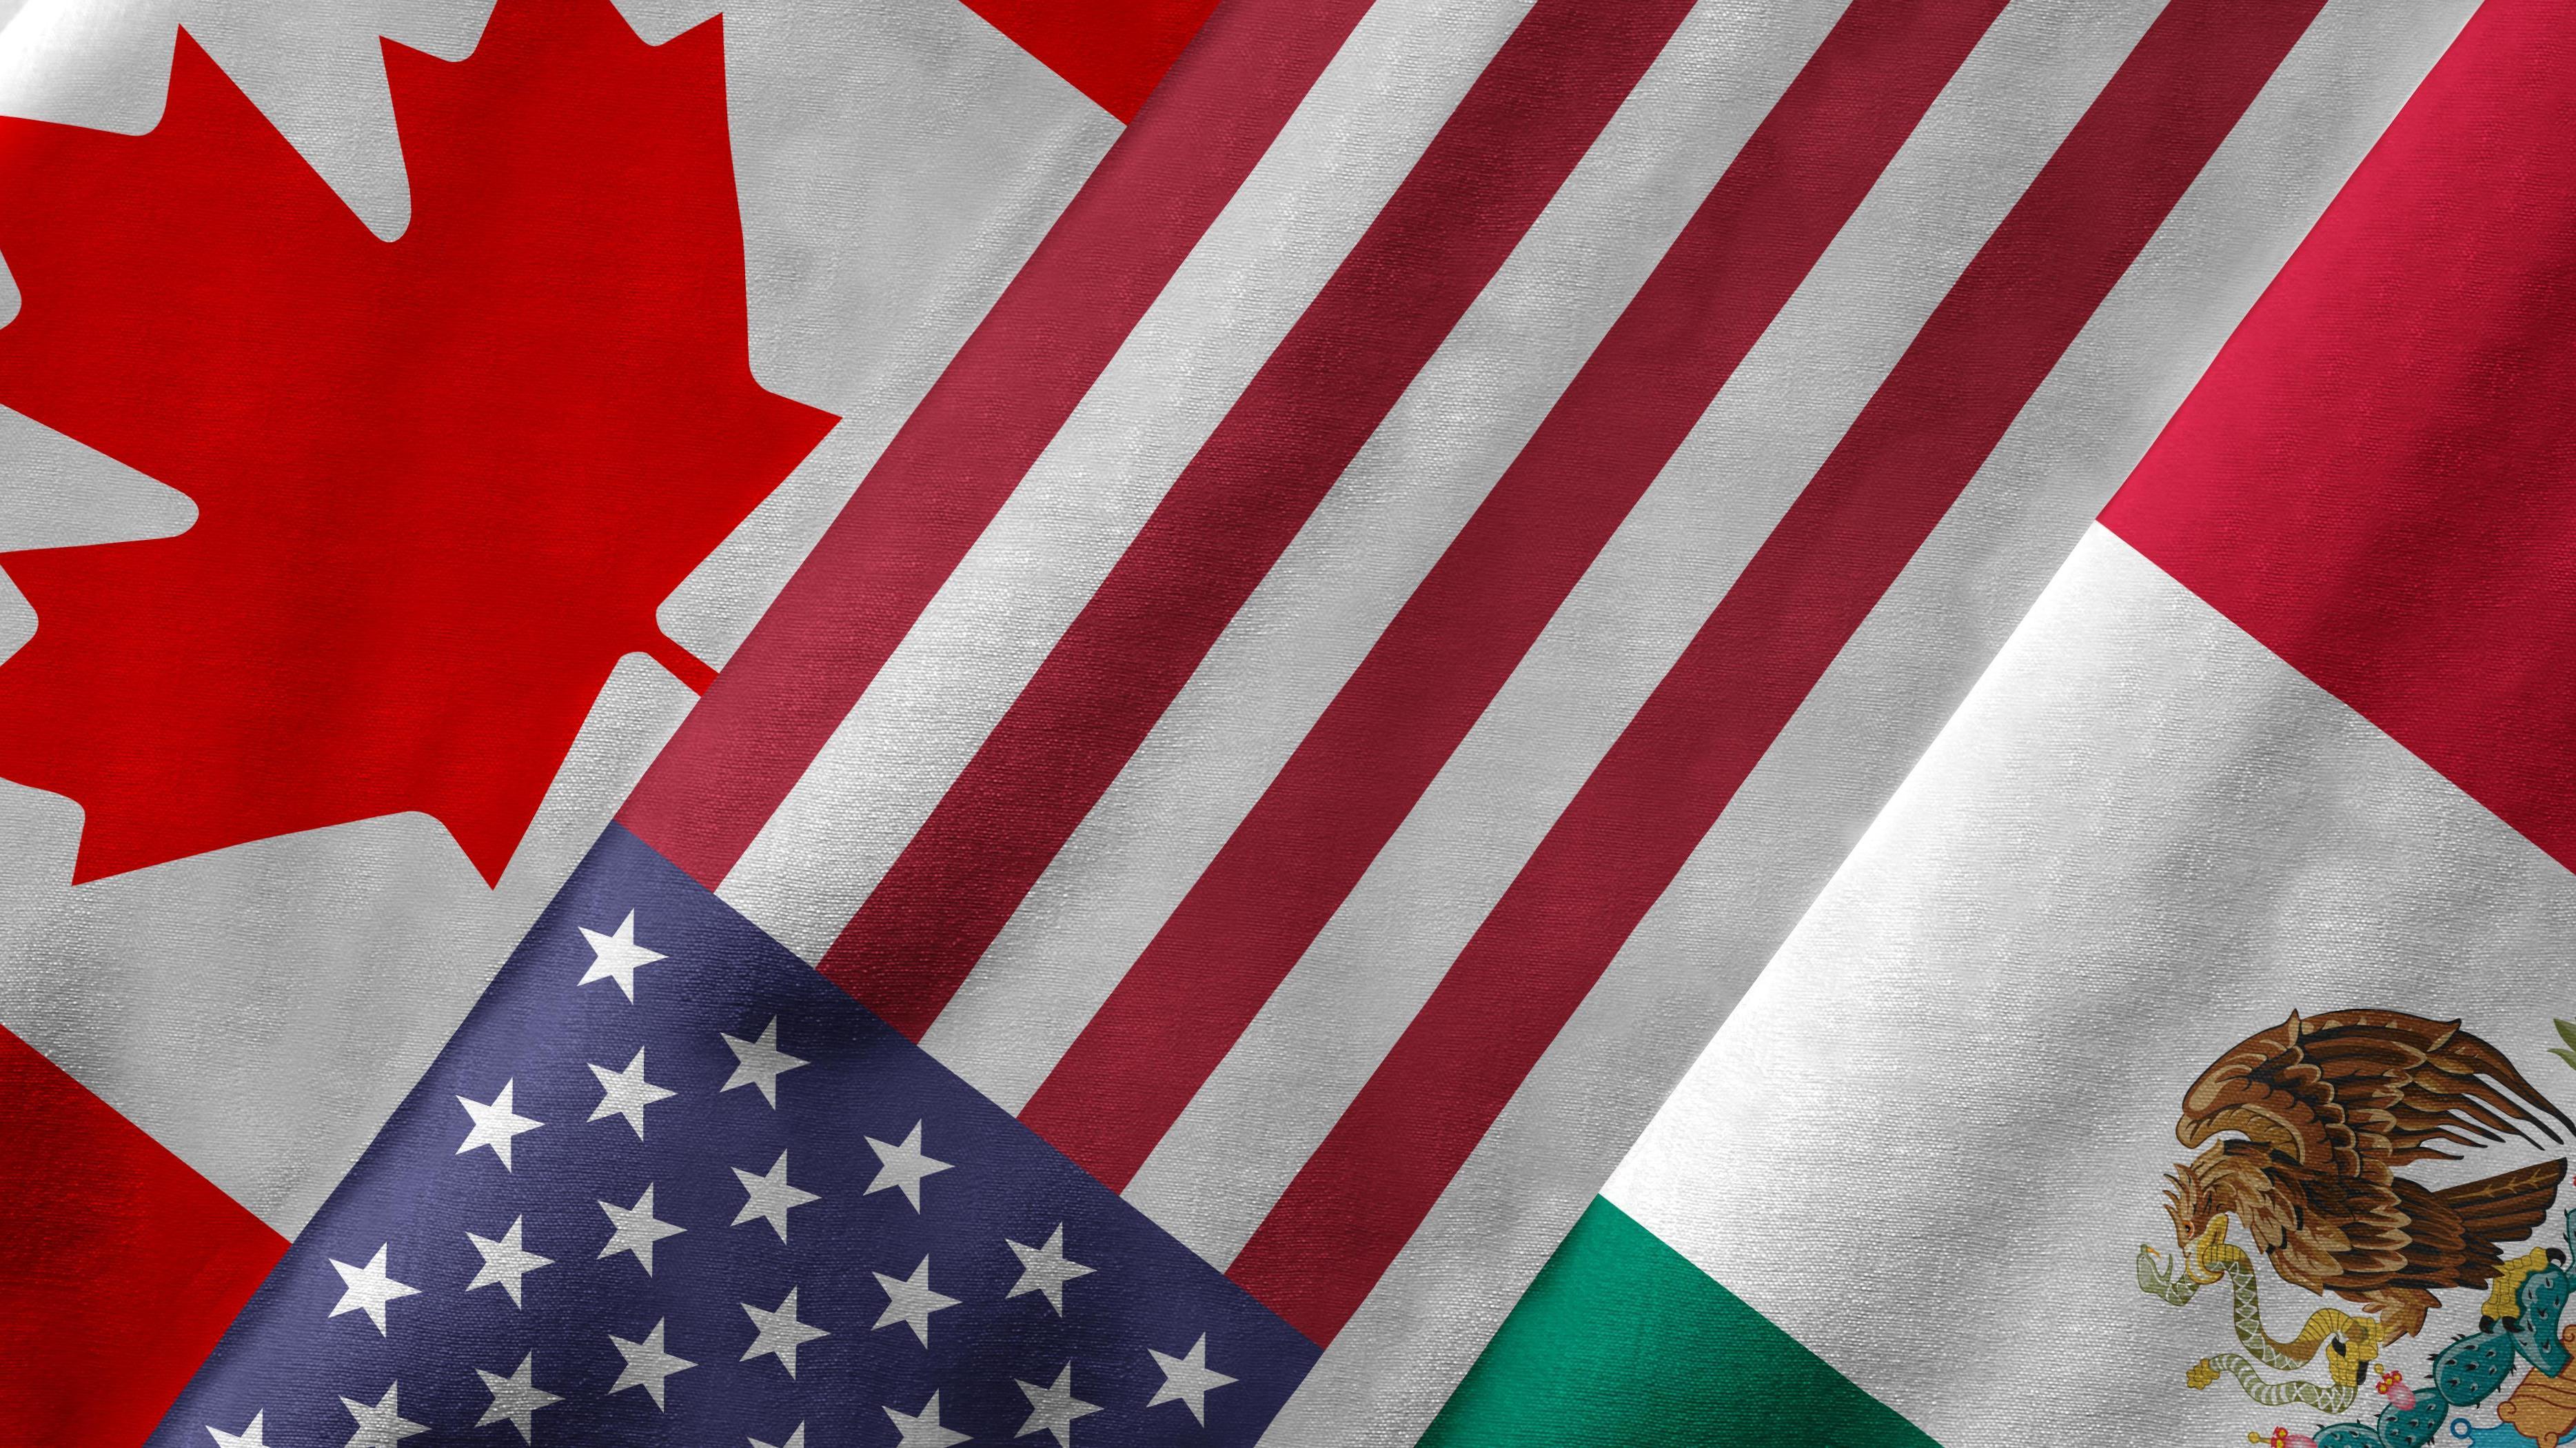 Us, Canada and Mexico Flags